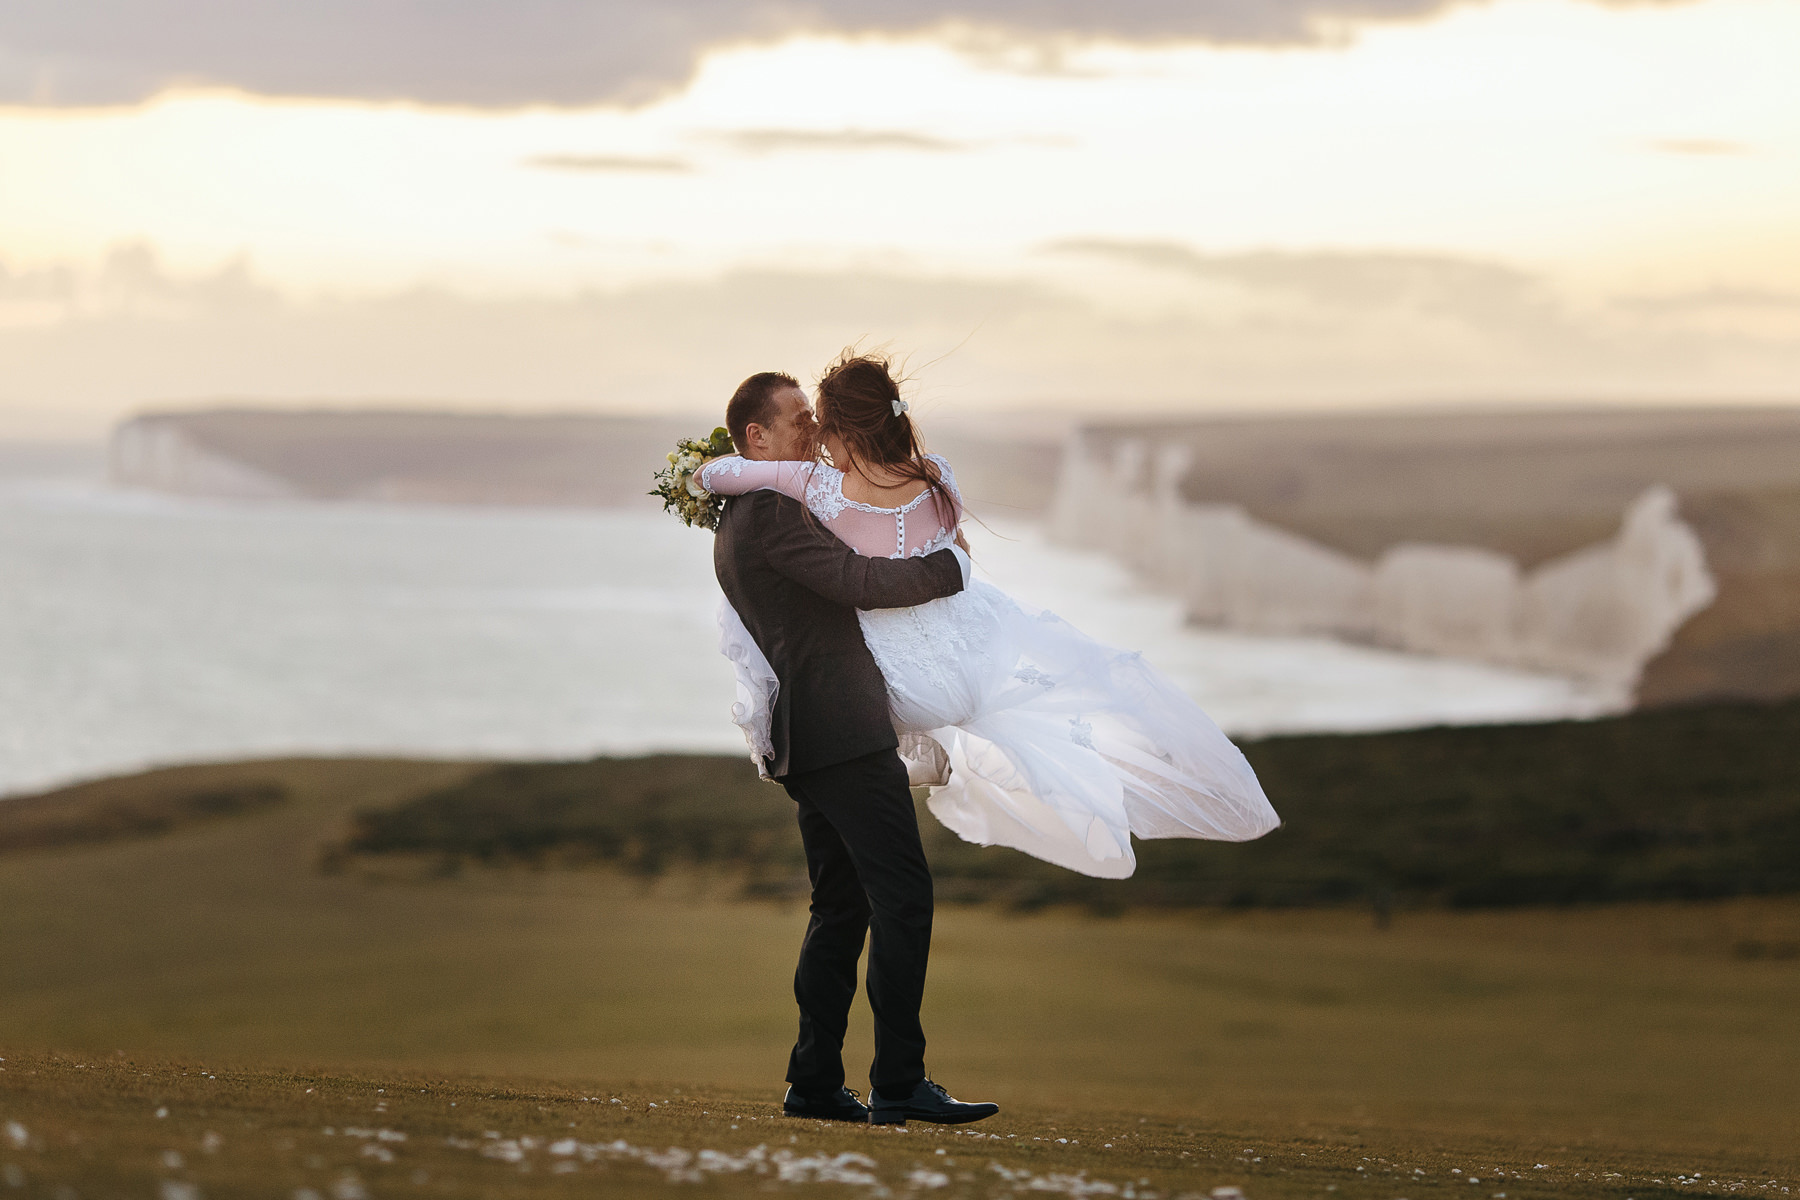 kate and tommy wedding photography kent canterbury